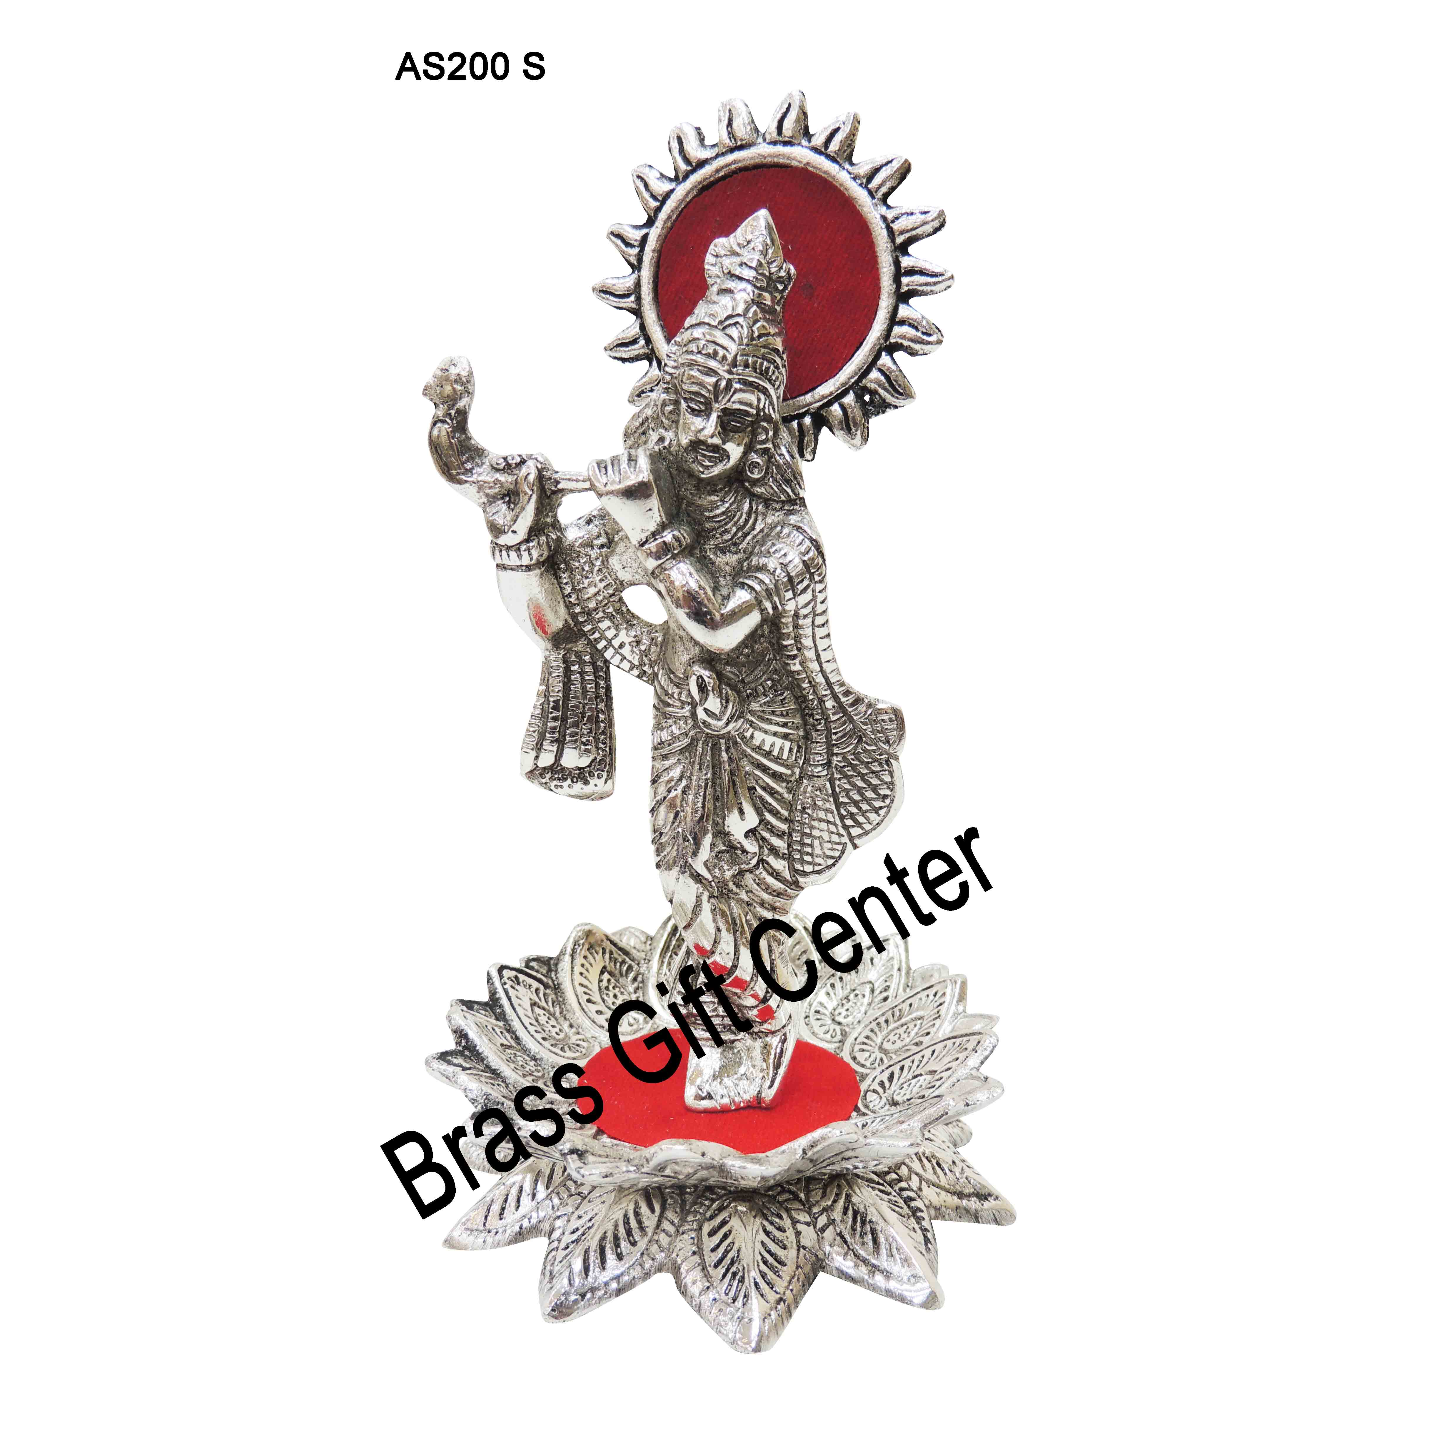 Aluminium Krishna Statue Murti Idol Silver Antique finish  - 3.5*3.5*6.5 Inch (AS200 S)